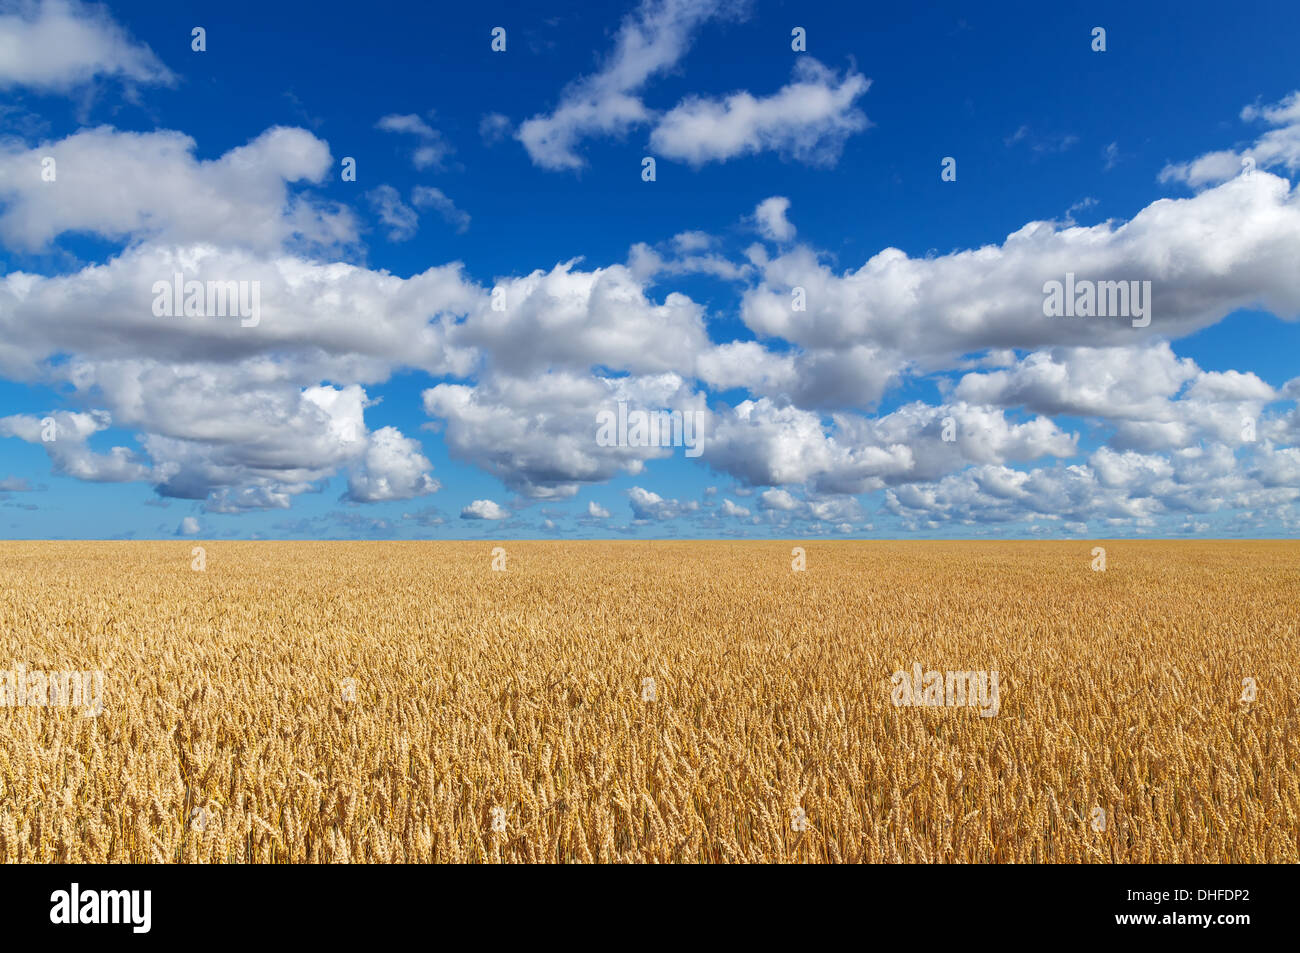 Golden wheat field, under blue sky with clouds.  - Stock Image